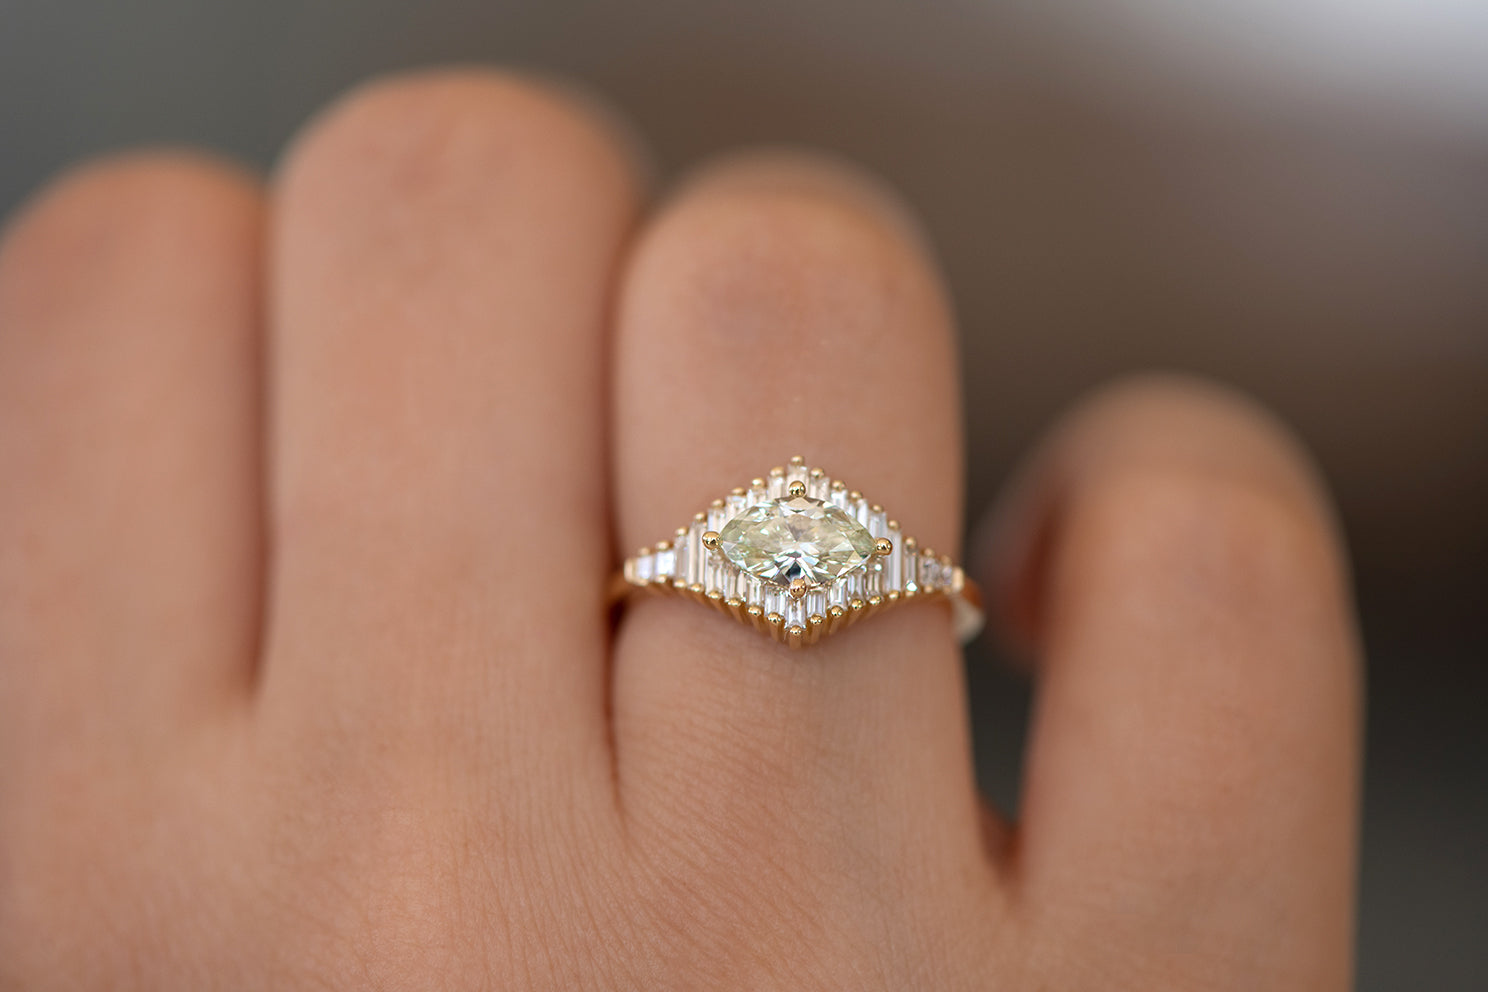 Green Diamond Engagement Ring with Baguette Diamonds - Fancy Color Diamond Ring on hand up close lower angle